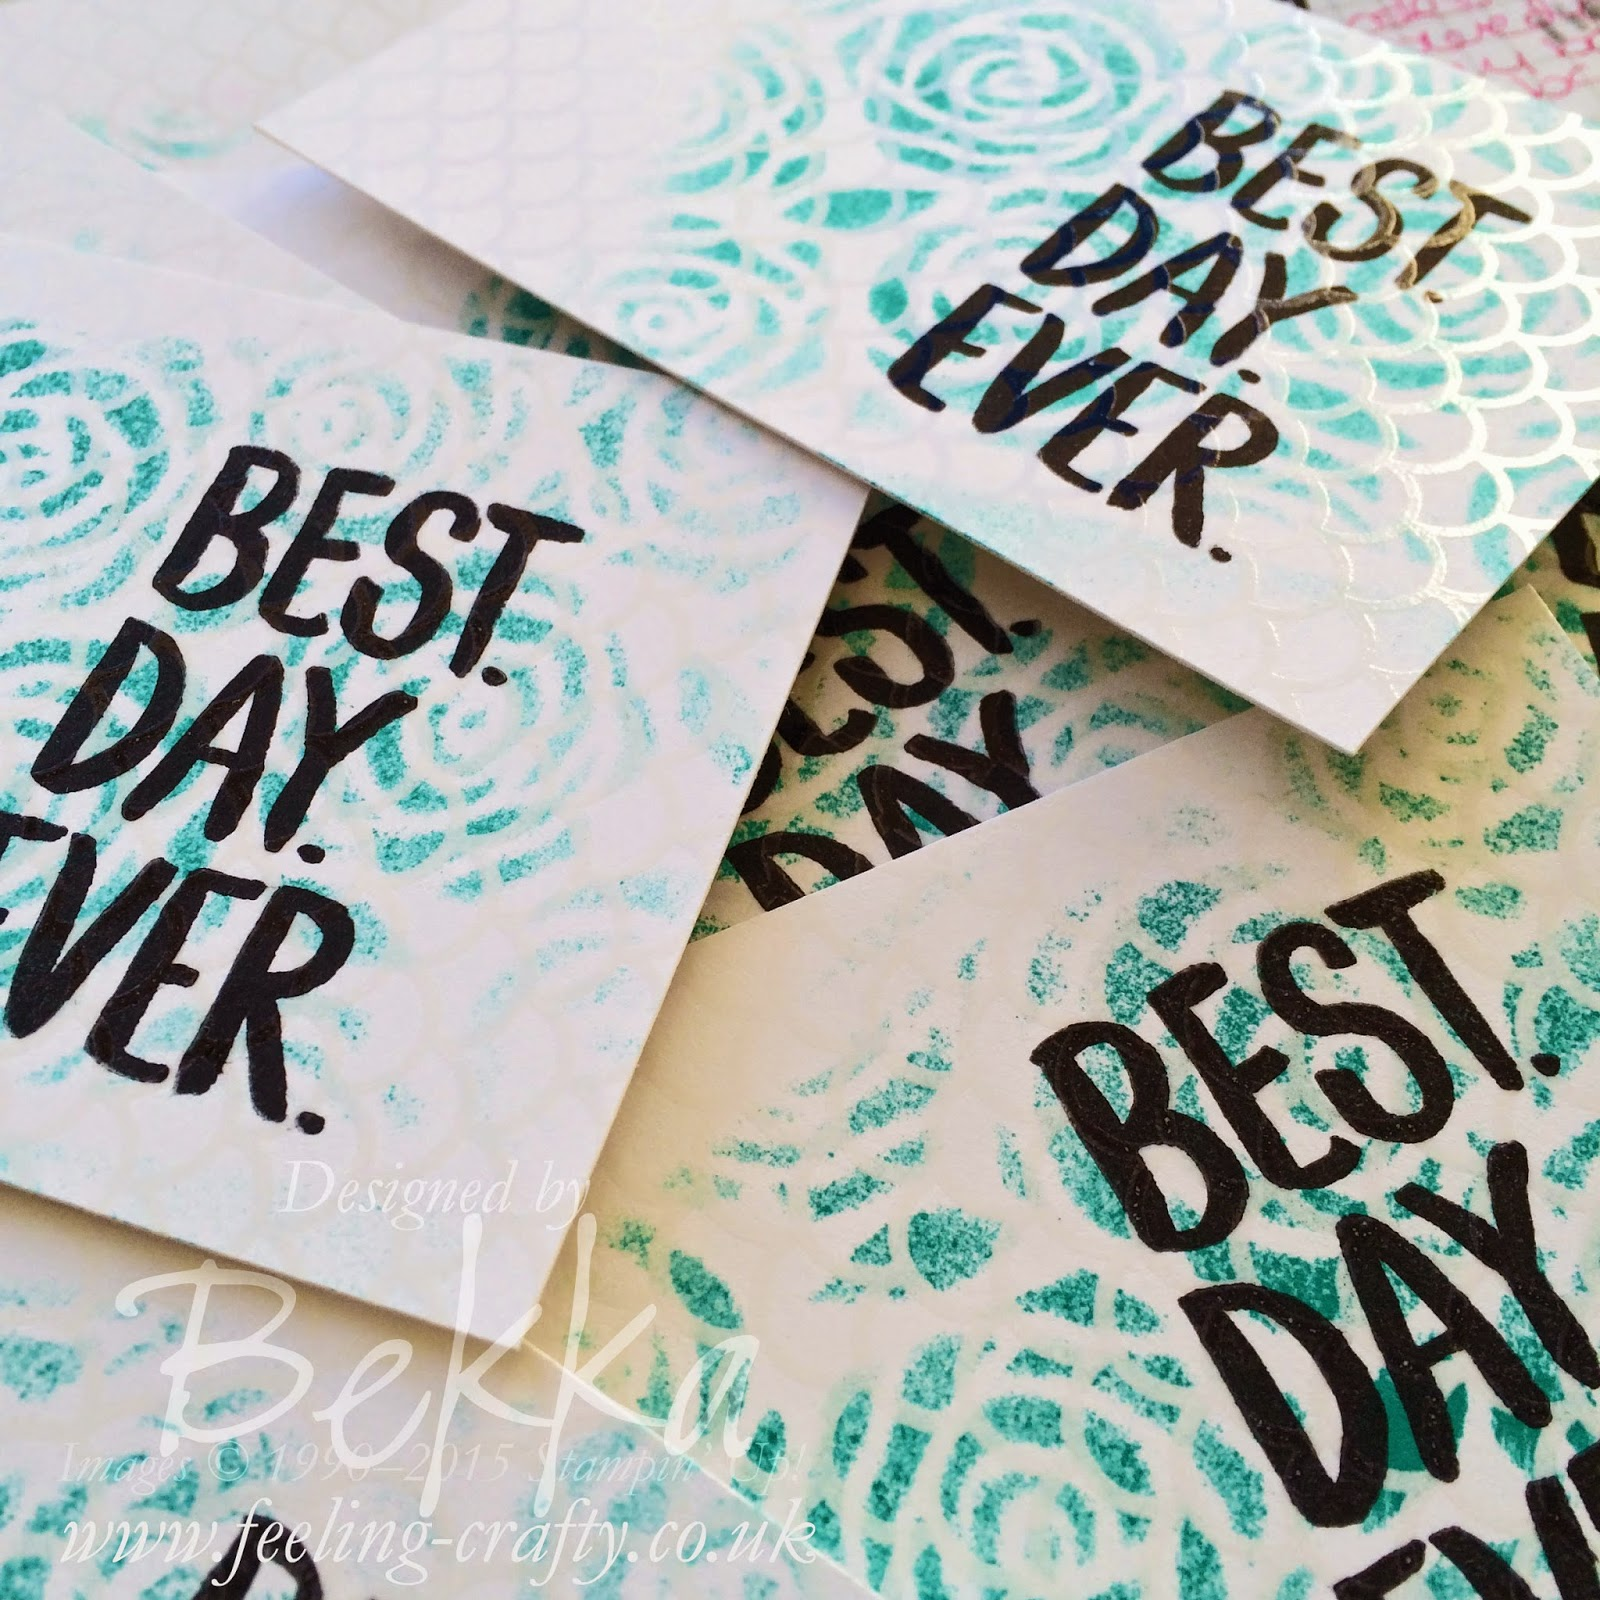 Best Day Ever Sneak Peek - check it out here